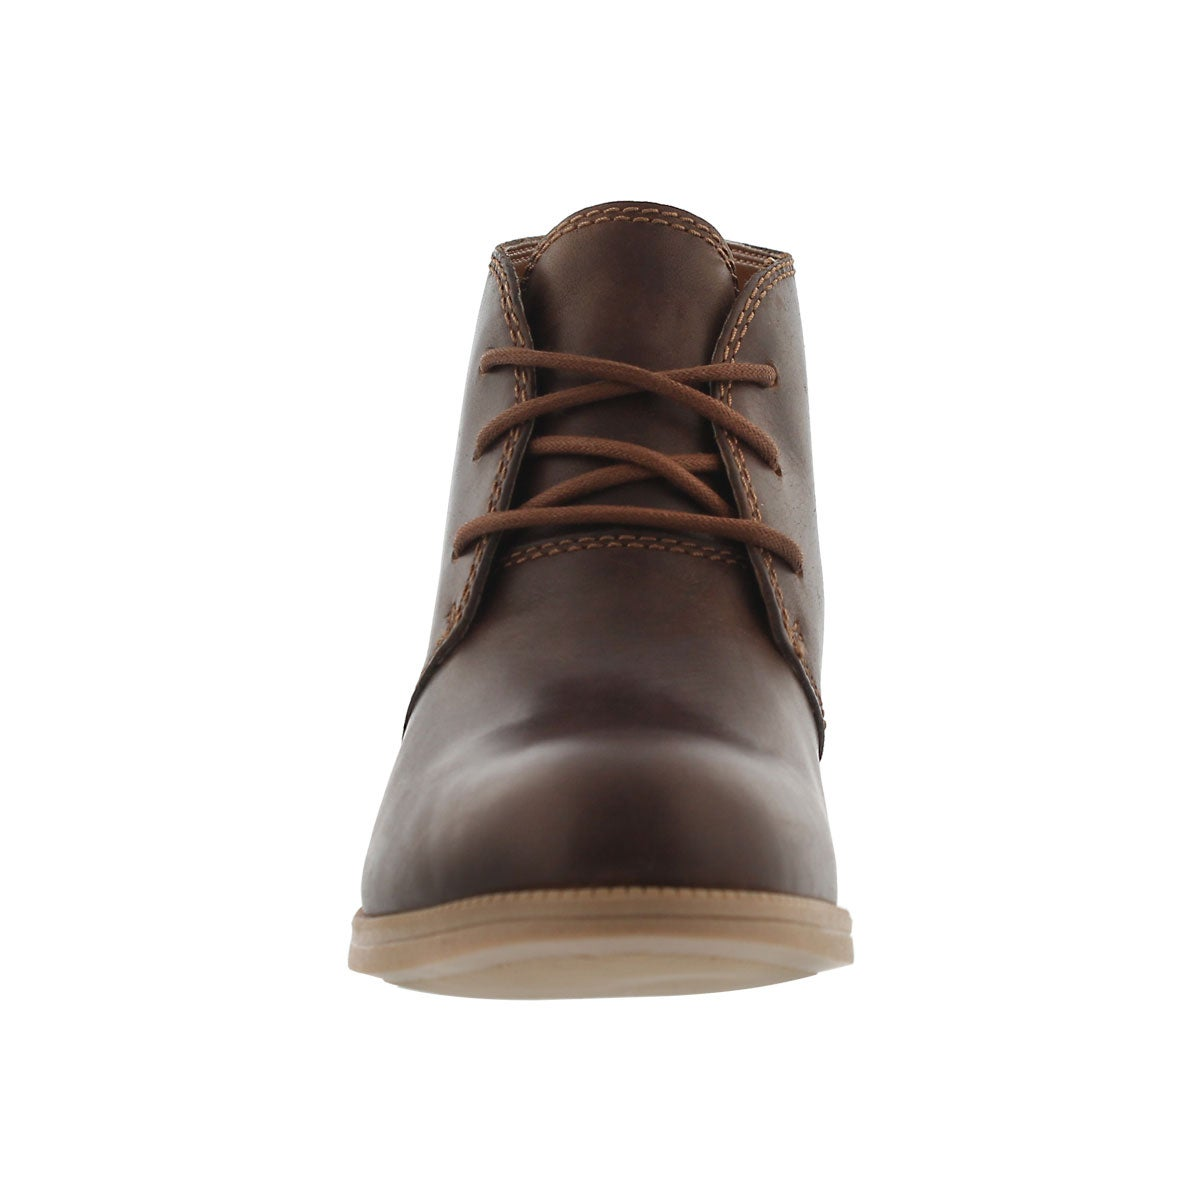 Lds Maypearl Flora dk tan lace up bootie